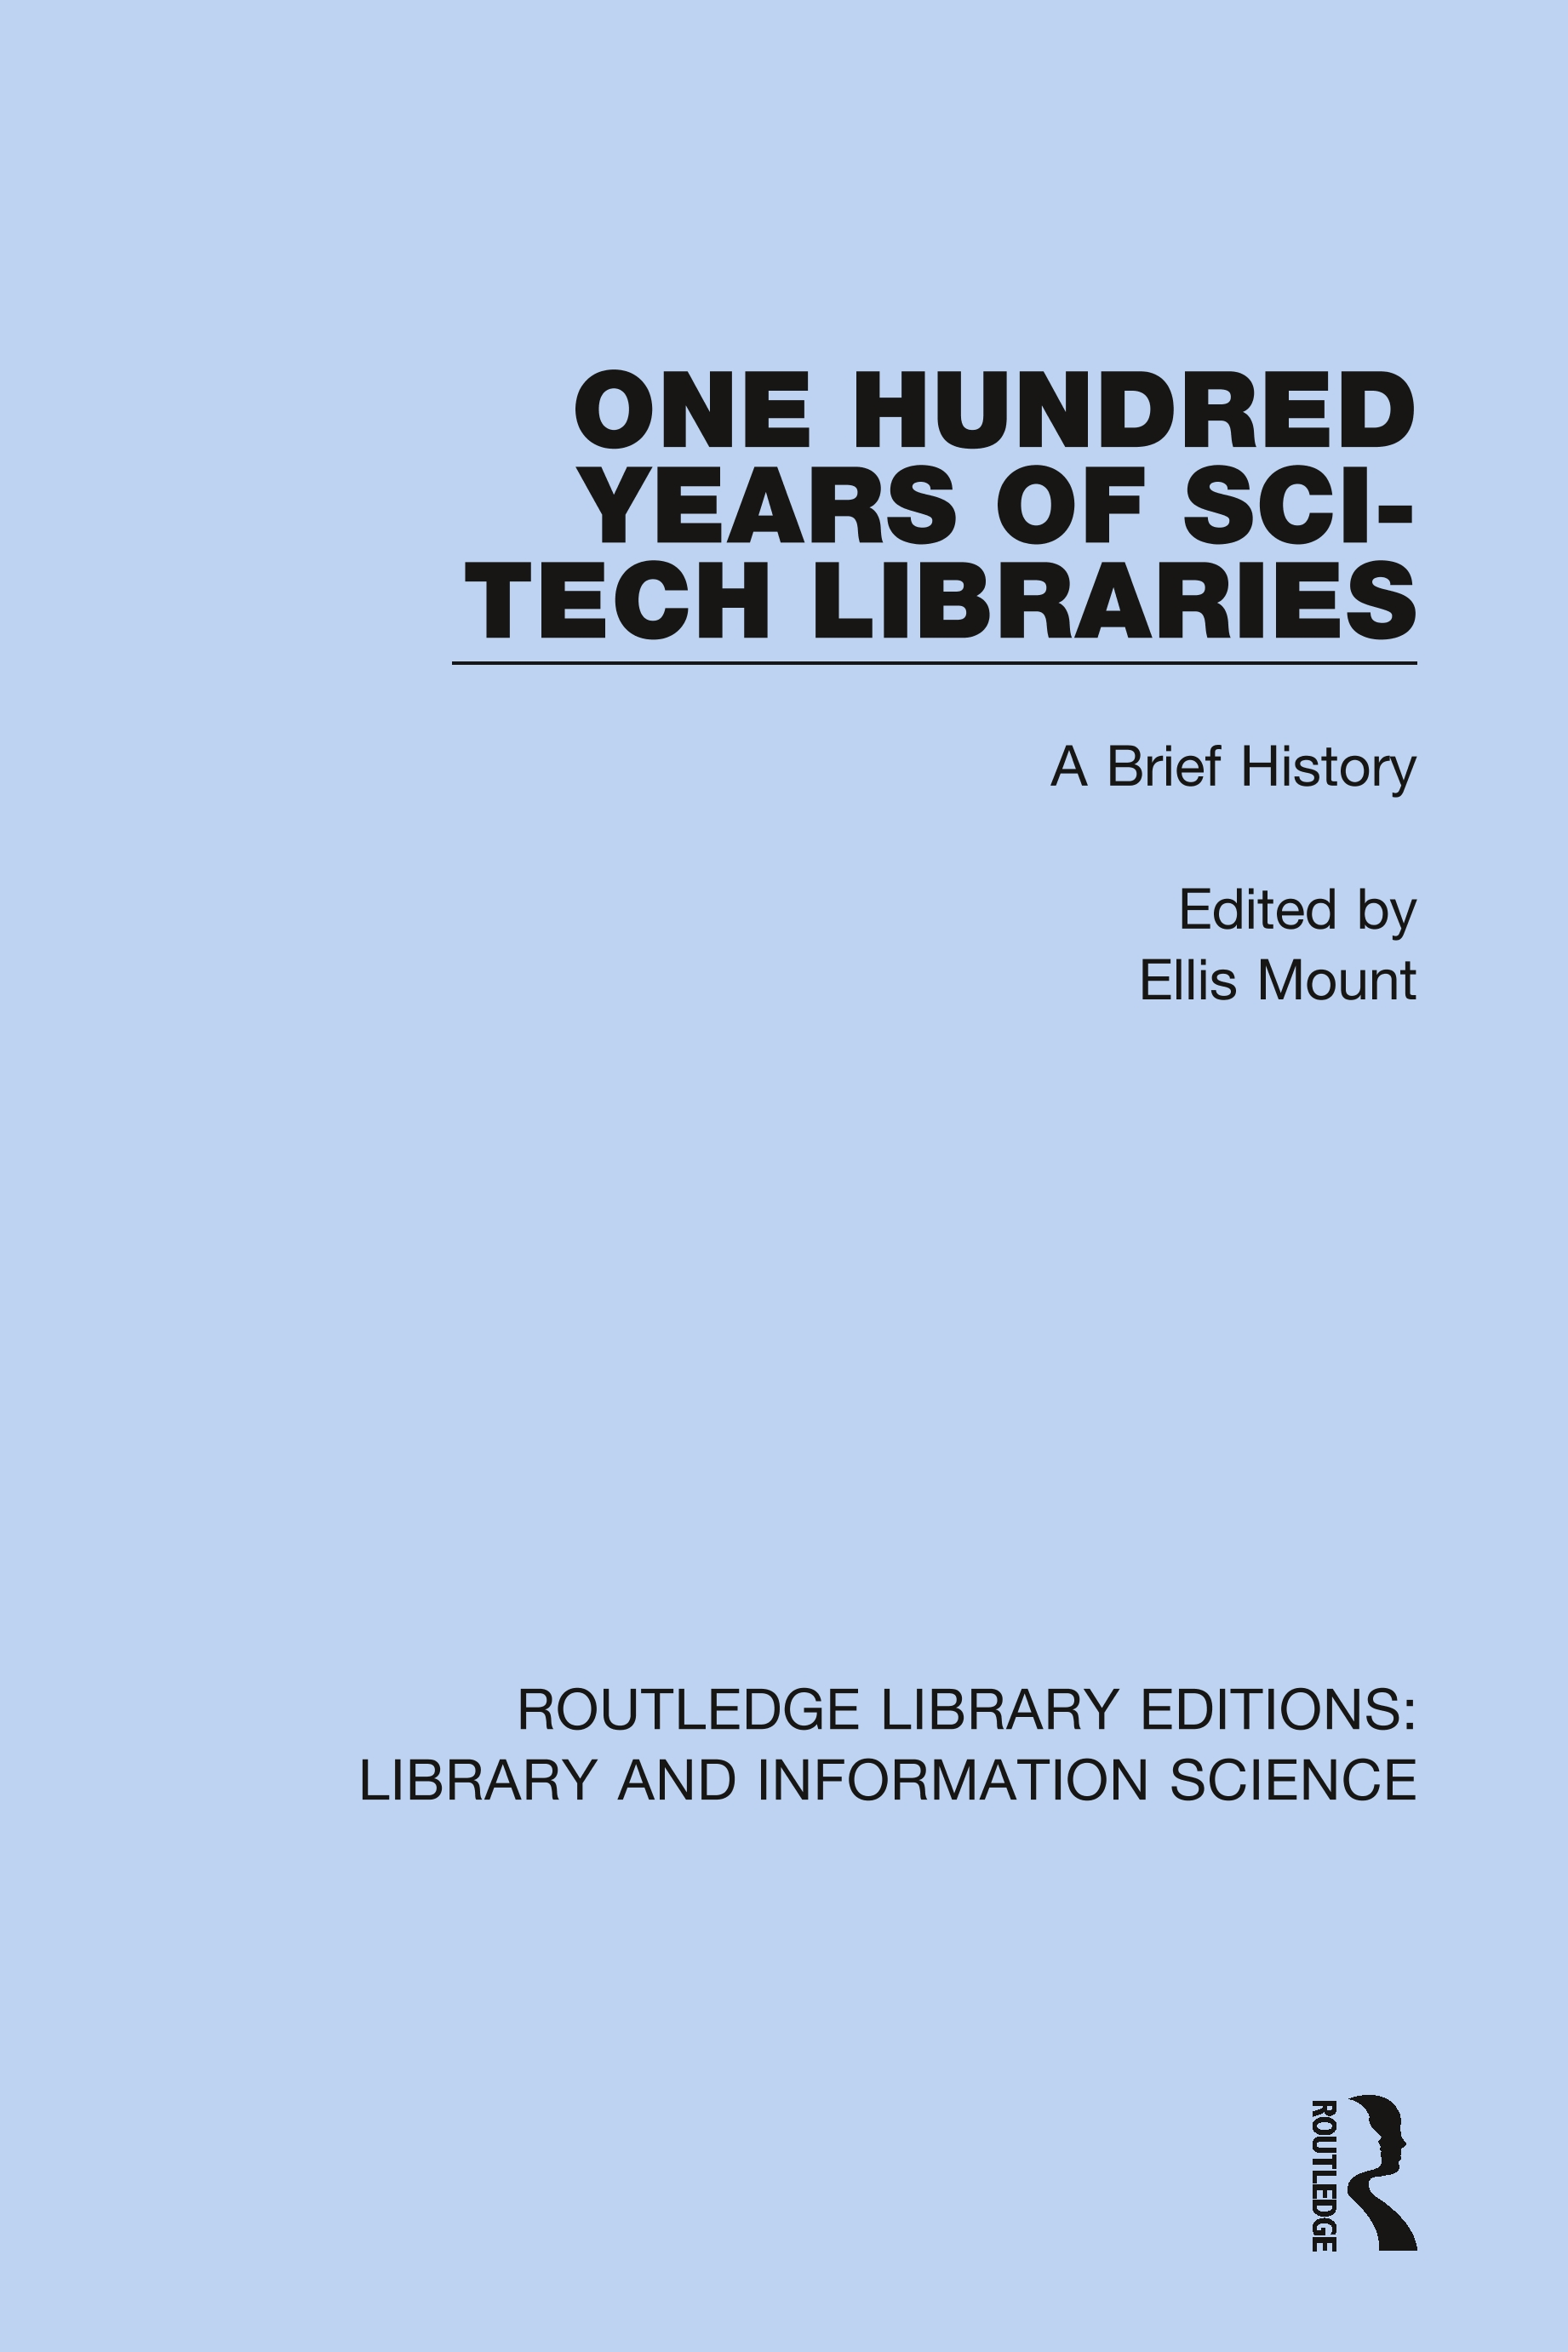 One Hundred Years of Sci-Tech Libraries: A Brief History book cover